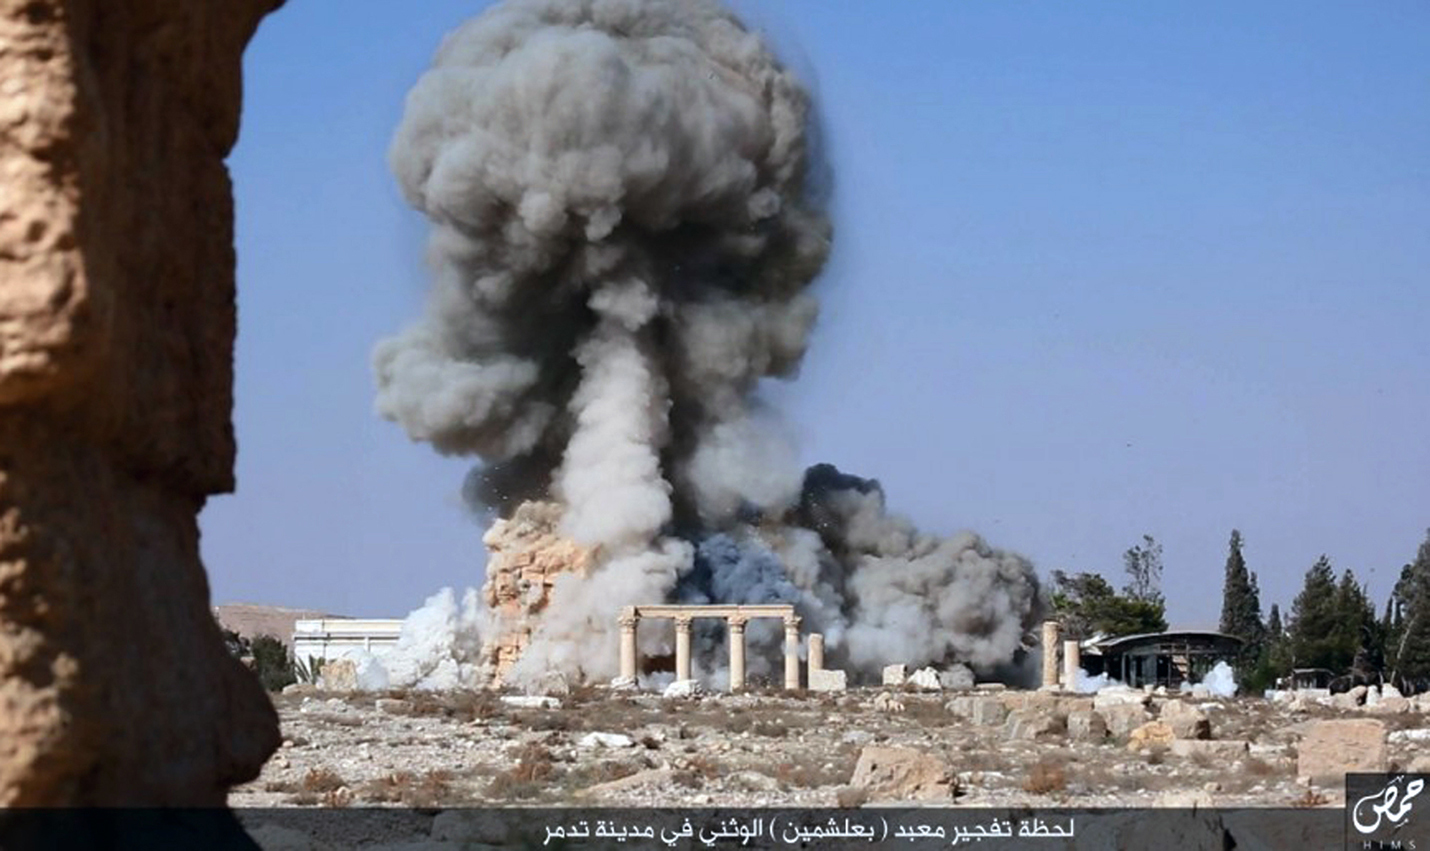 This undated photo released Tuesday, Aug. 25, 2015, photo, on a social media site used by Islamic State militants, which has been verified and is consistent with other AP reporting, shows smoke from the detonation of the 2,000-year-old temple of Baalshamin in Syria's ancient caravan city of Palmyra. (Islamic State social media account via AP)